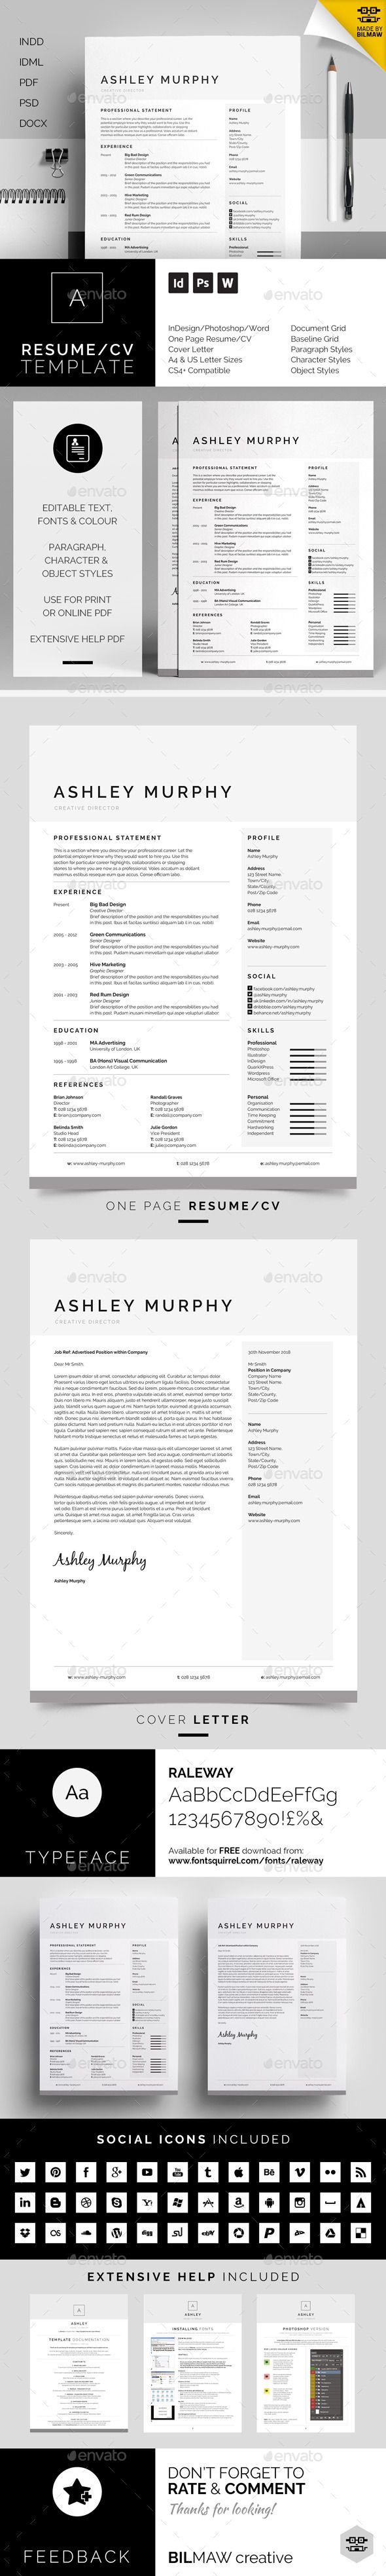 600 best Resume Design images on Pinterest Resume Curriculum and